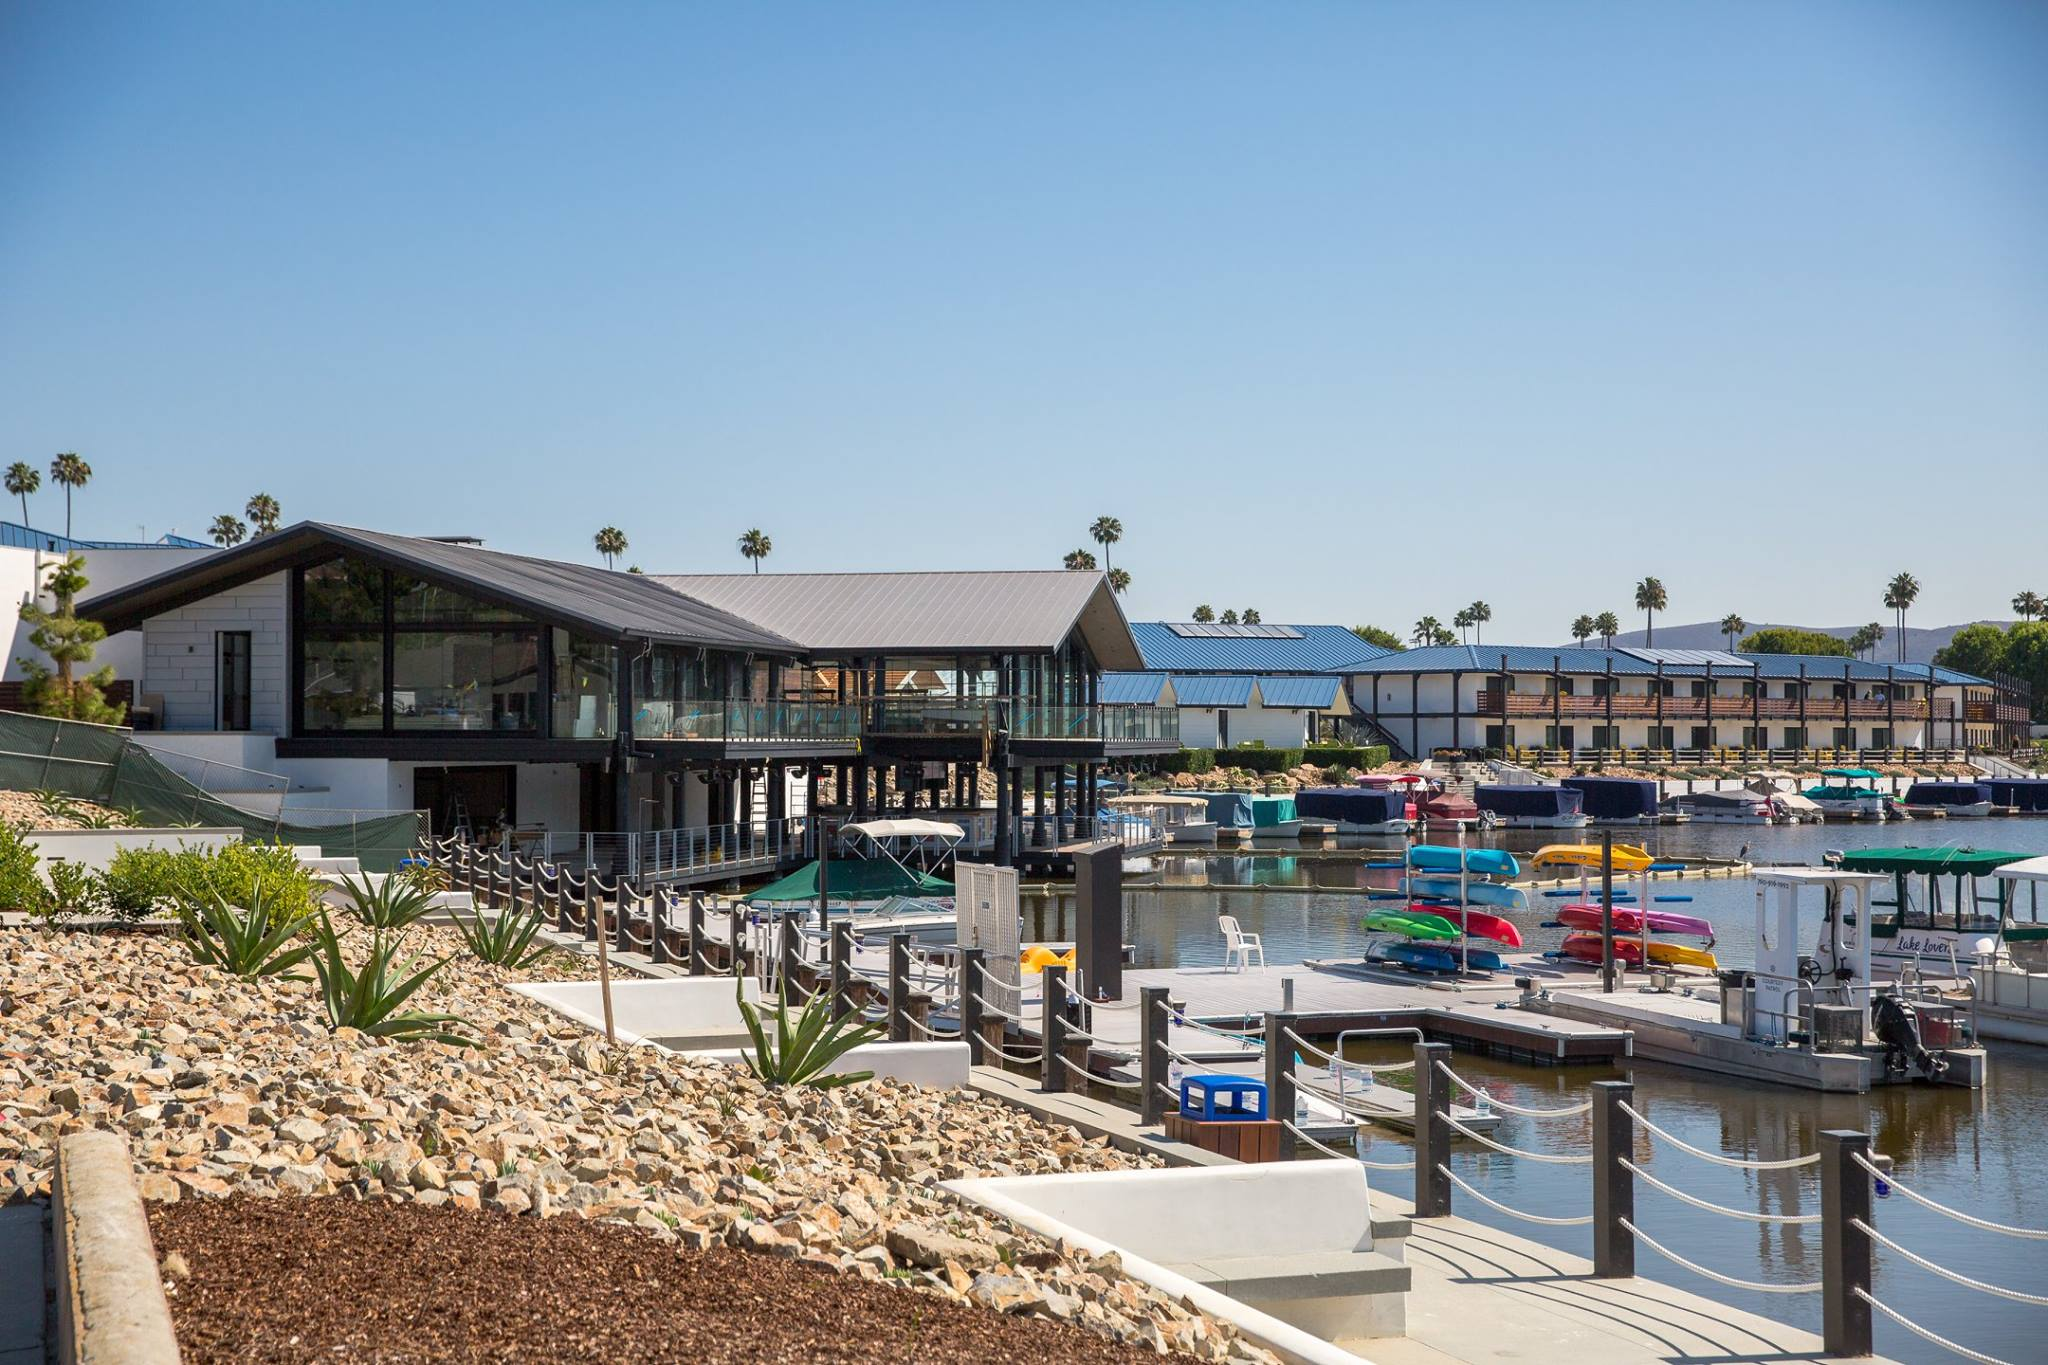 Decoy dockside dining san diego 39 s newest waterfront dining option the foodie whisperer - Quails inn restaurant san marcos ...